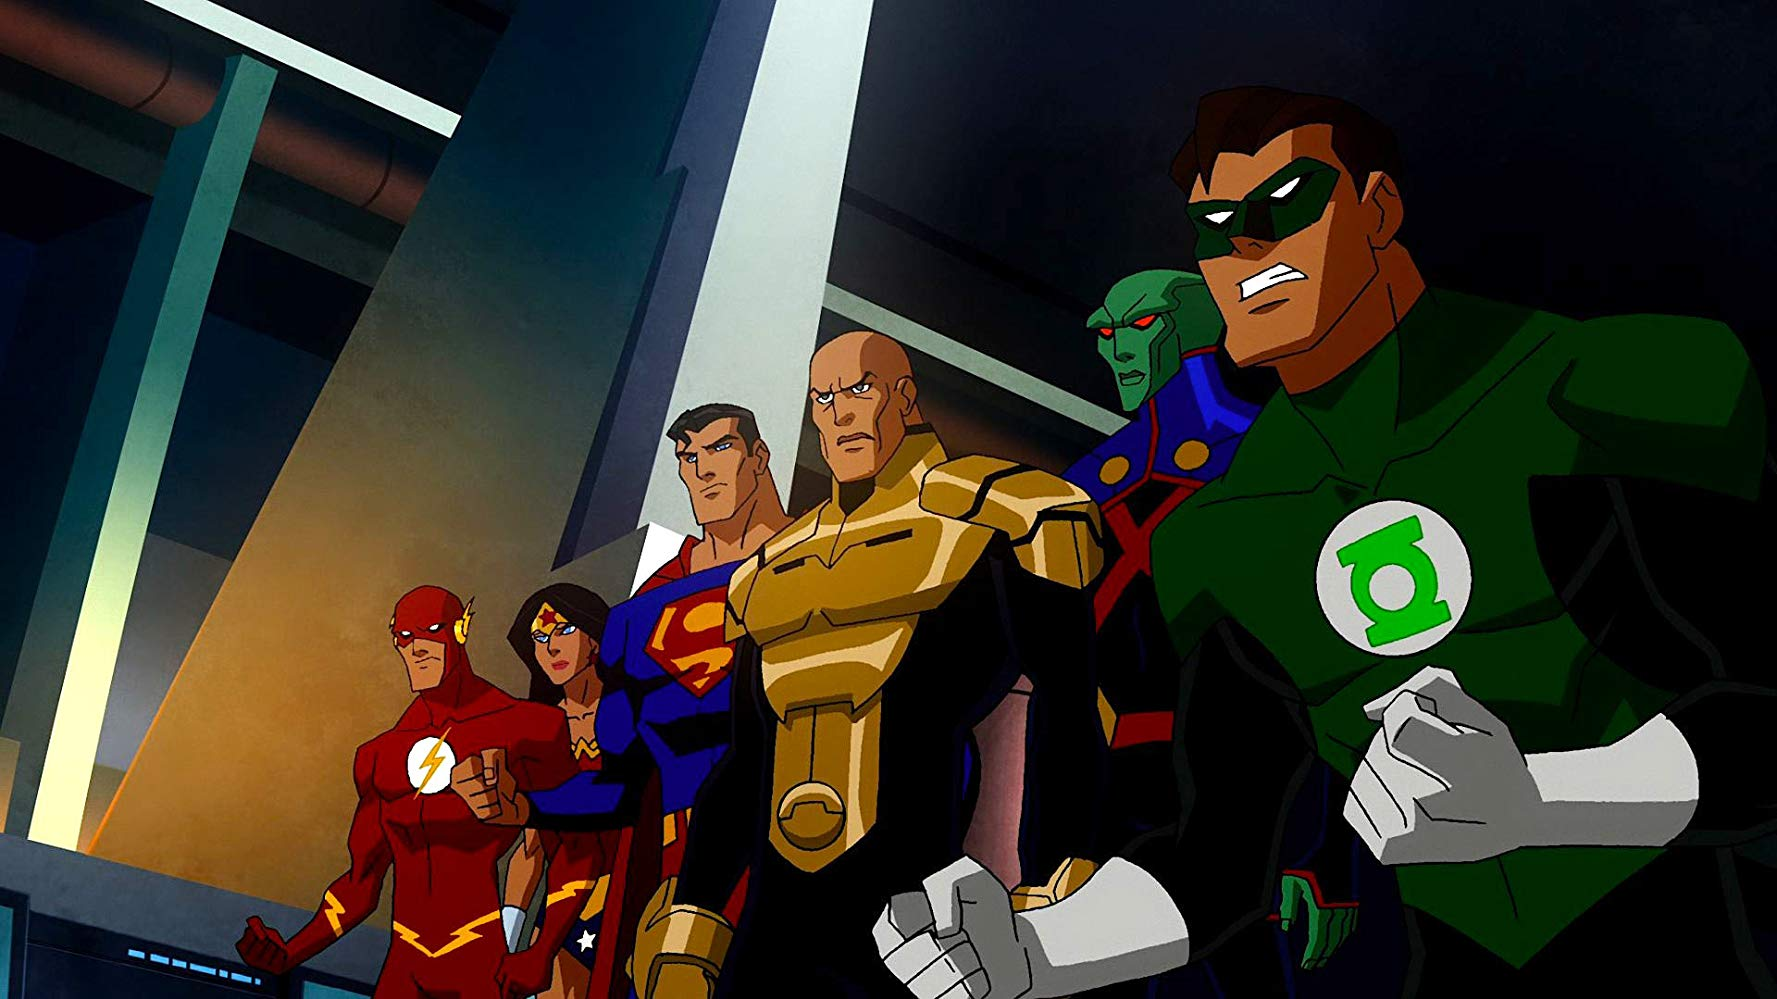 The Flash, Wonder Woman, Superman, the alternate world Lex Luthor, J'onn J'onnz and Green Lantern in Justice League Crisis on Two Earths (2010)